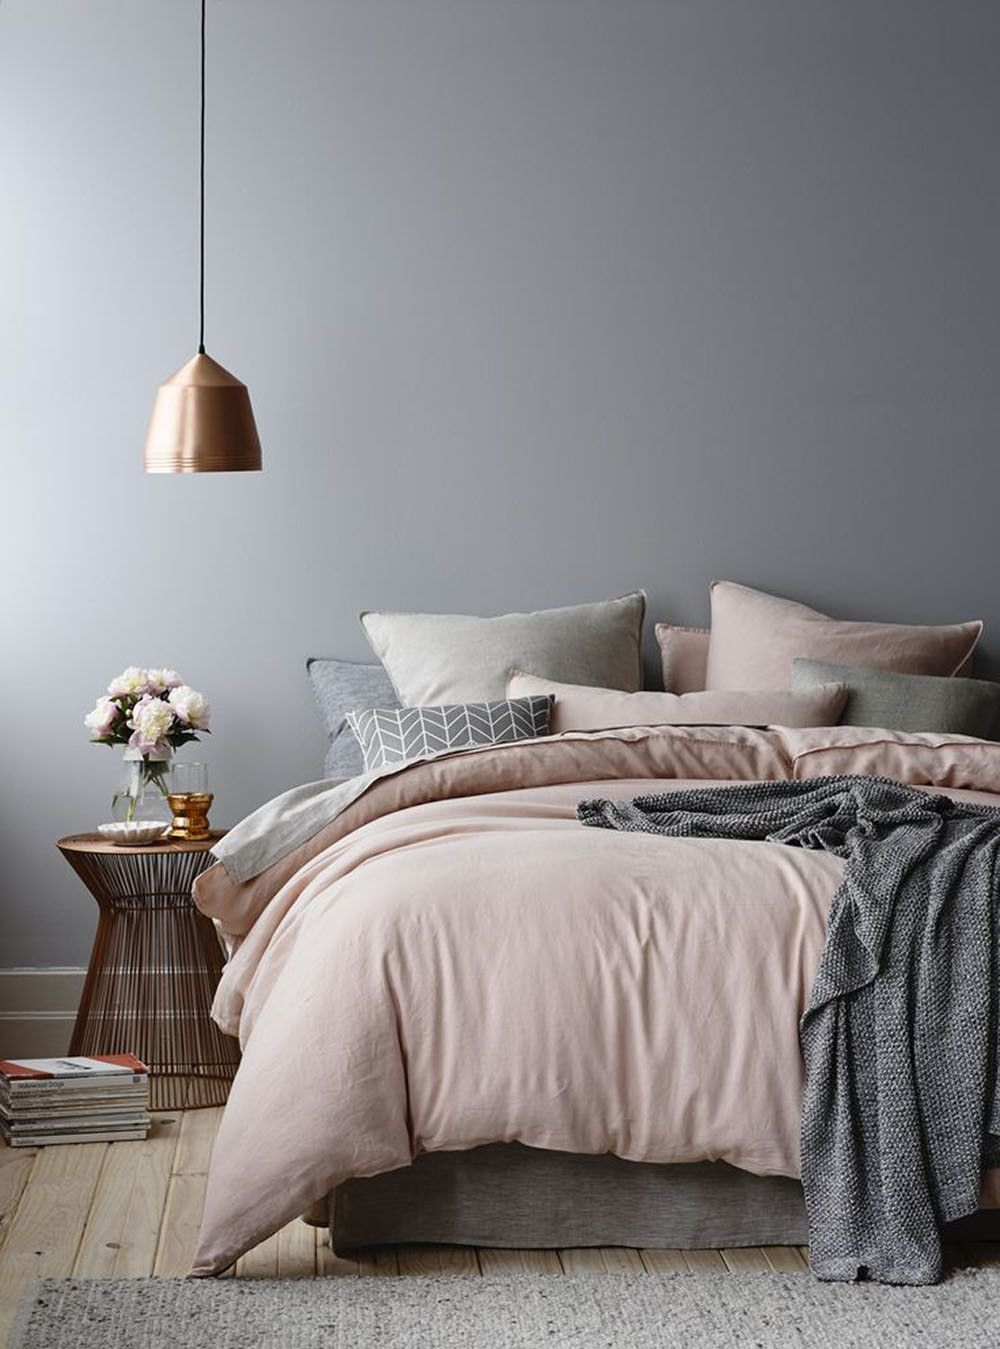 Decorating With Dusty Pink Style Minimalism Bedroom Inspirations Home Bedroom Bedroom Design